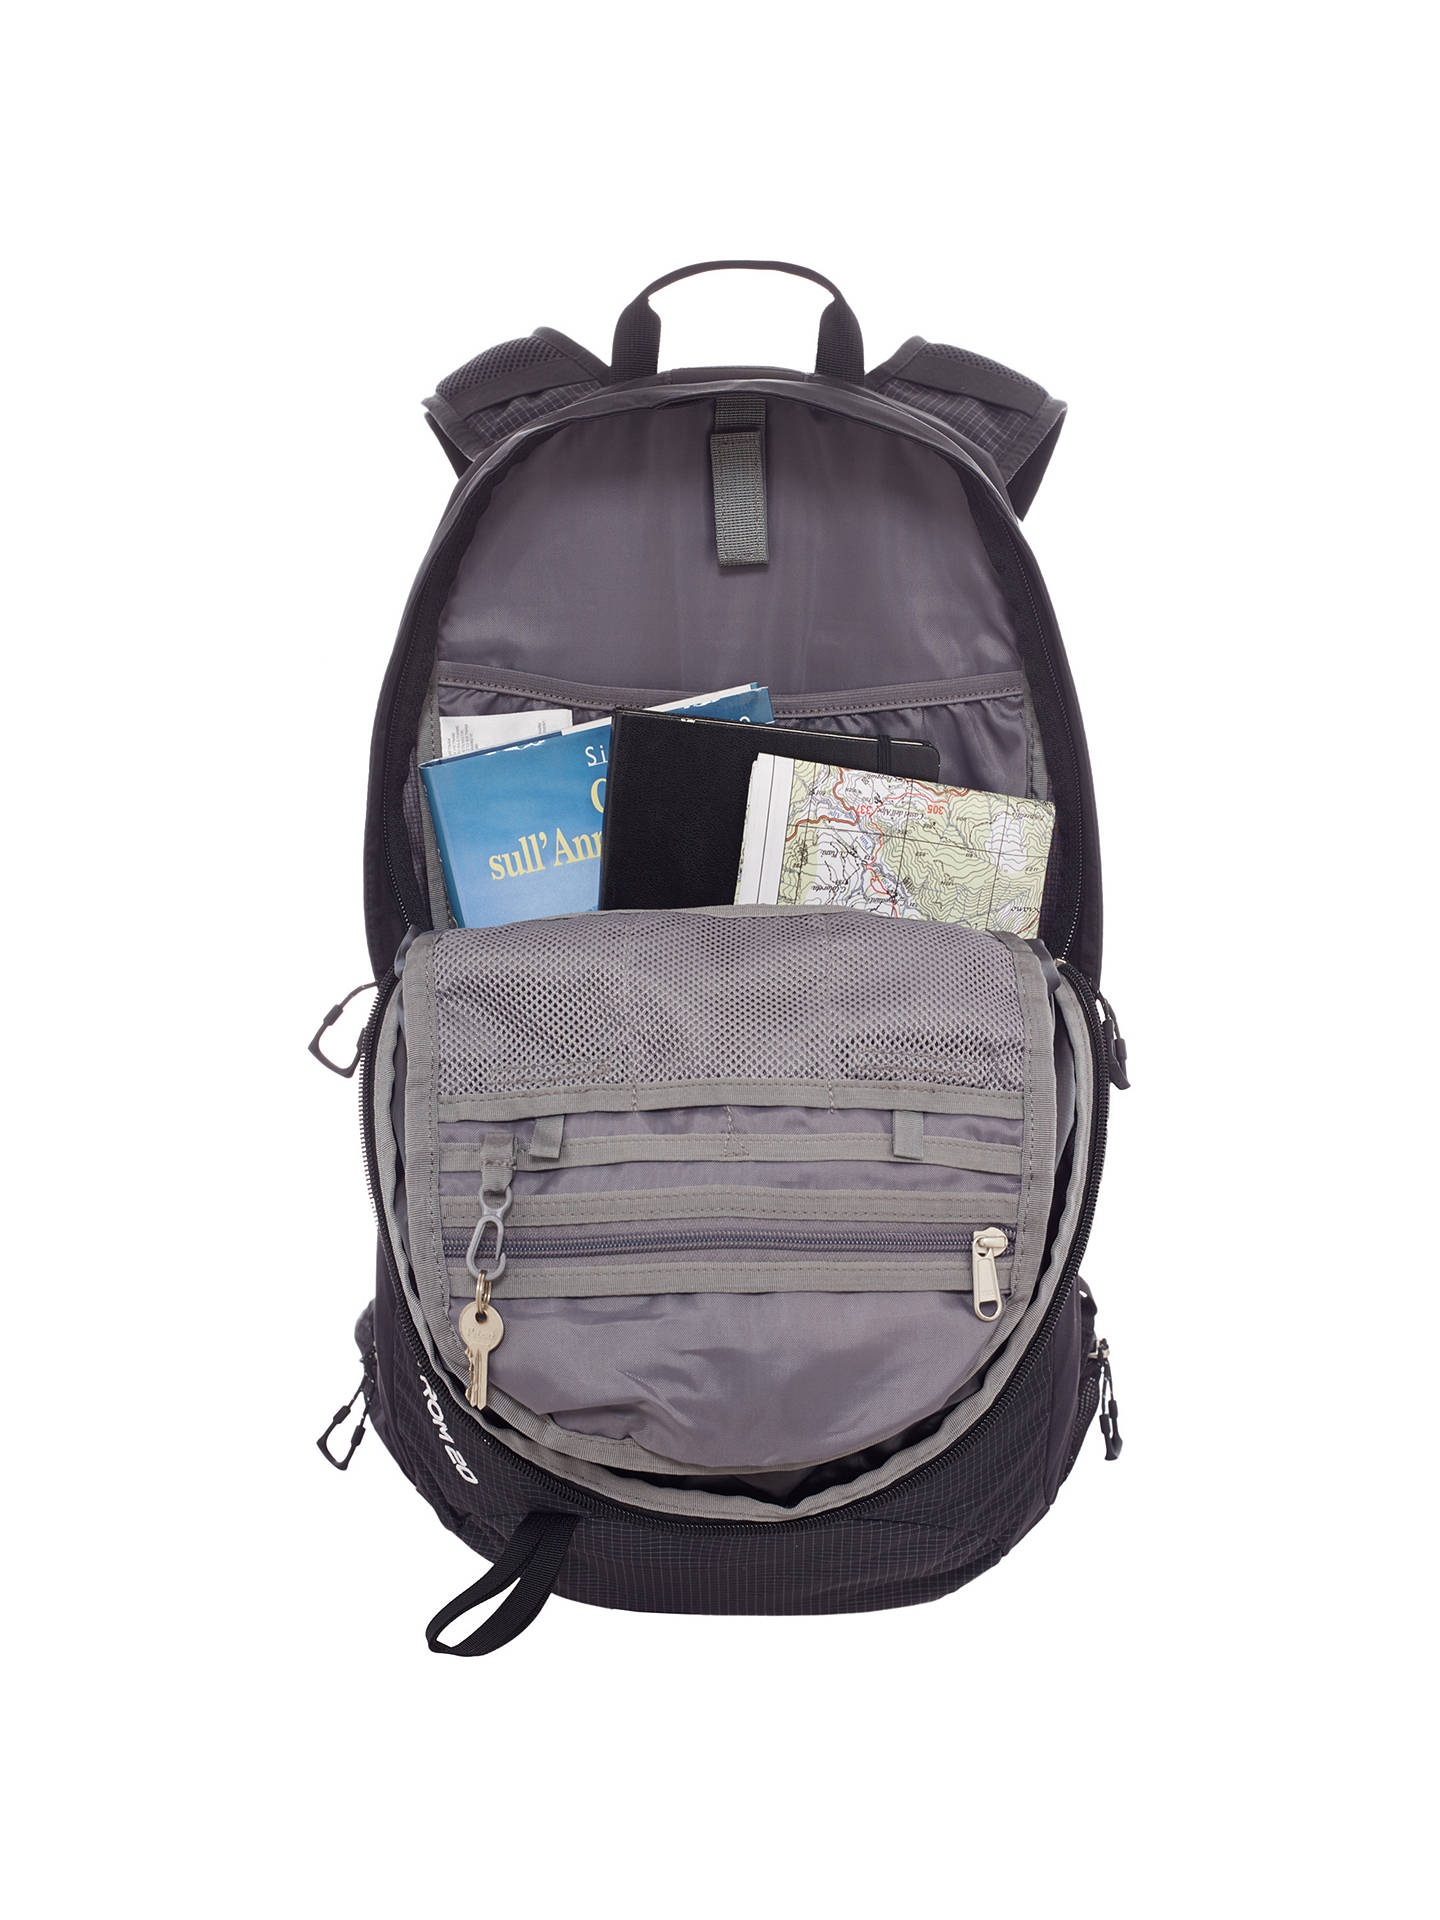 29f14bf51 The North Face Angstrom 20L Backpack at John Lewis & Partners